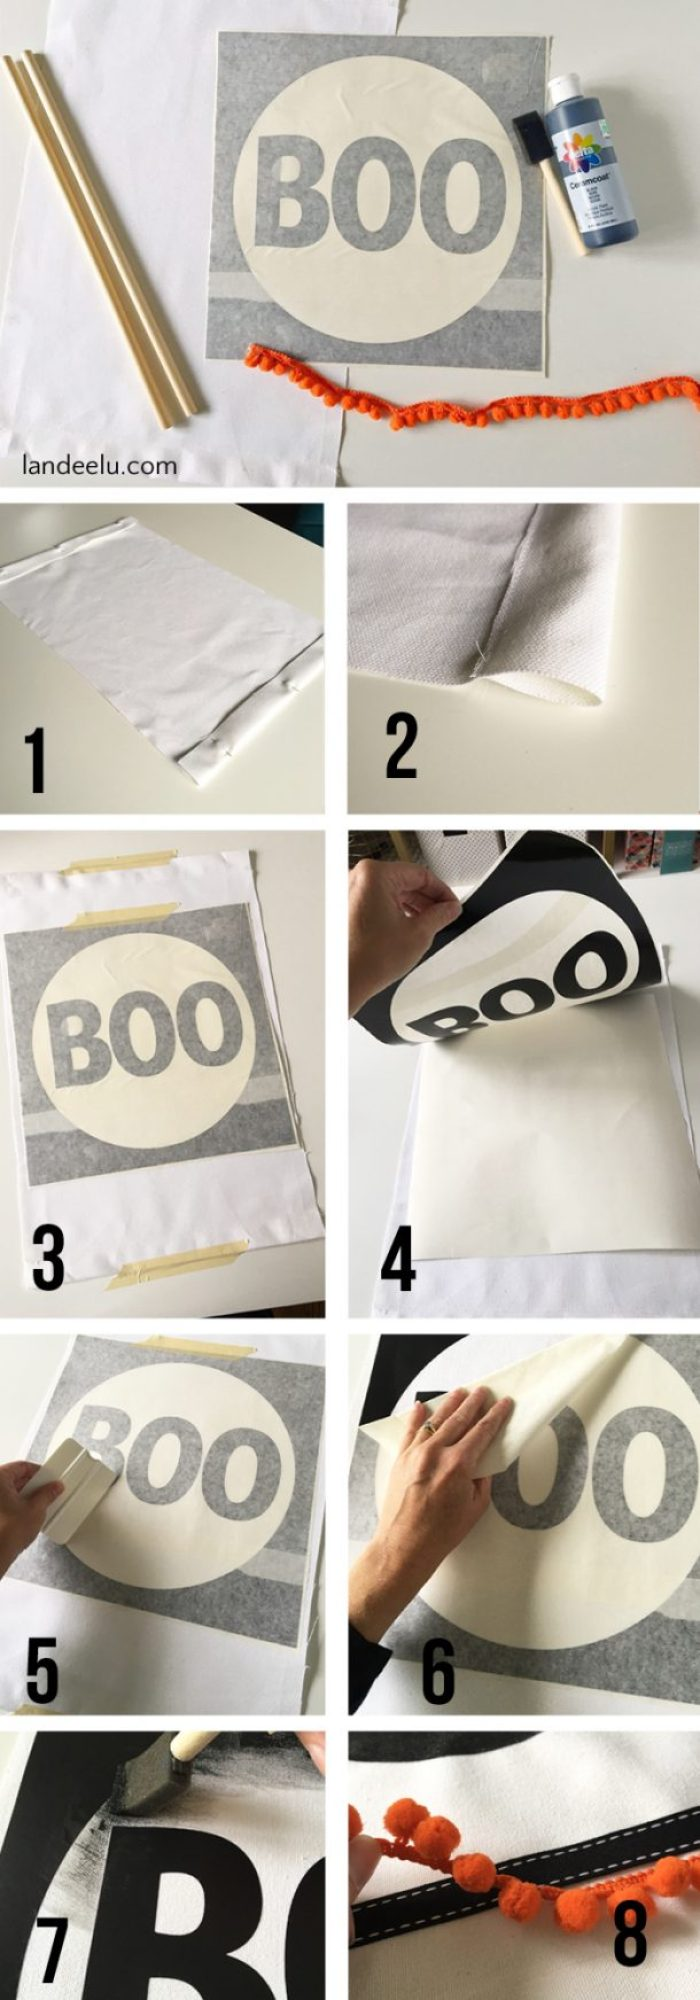 A darling Halloween craft made from canvas and a vinyl stencil! Easy sew project.